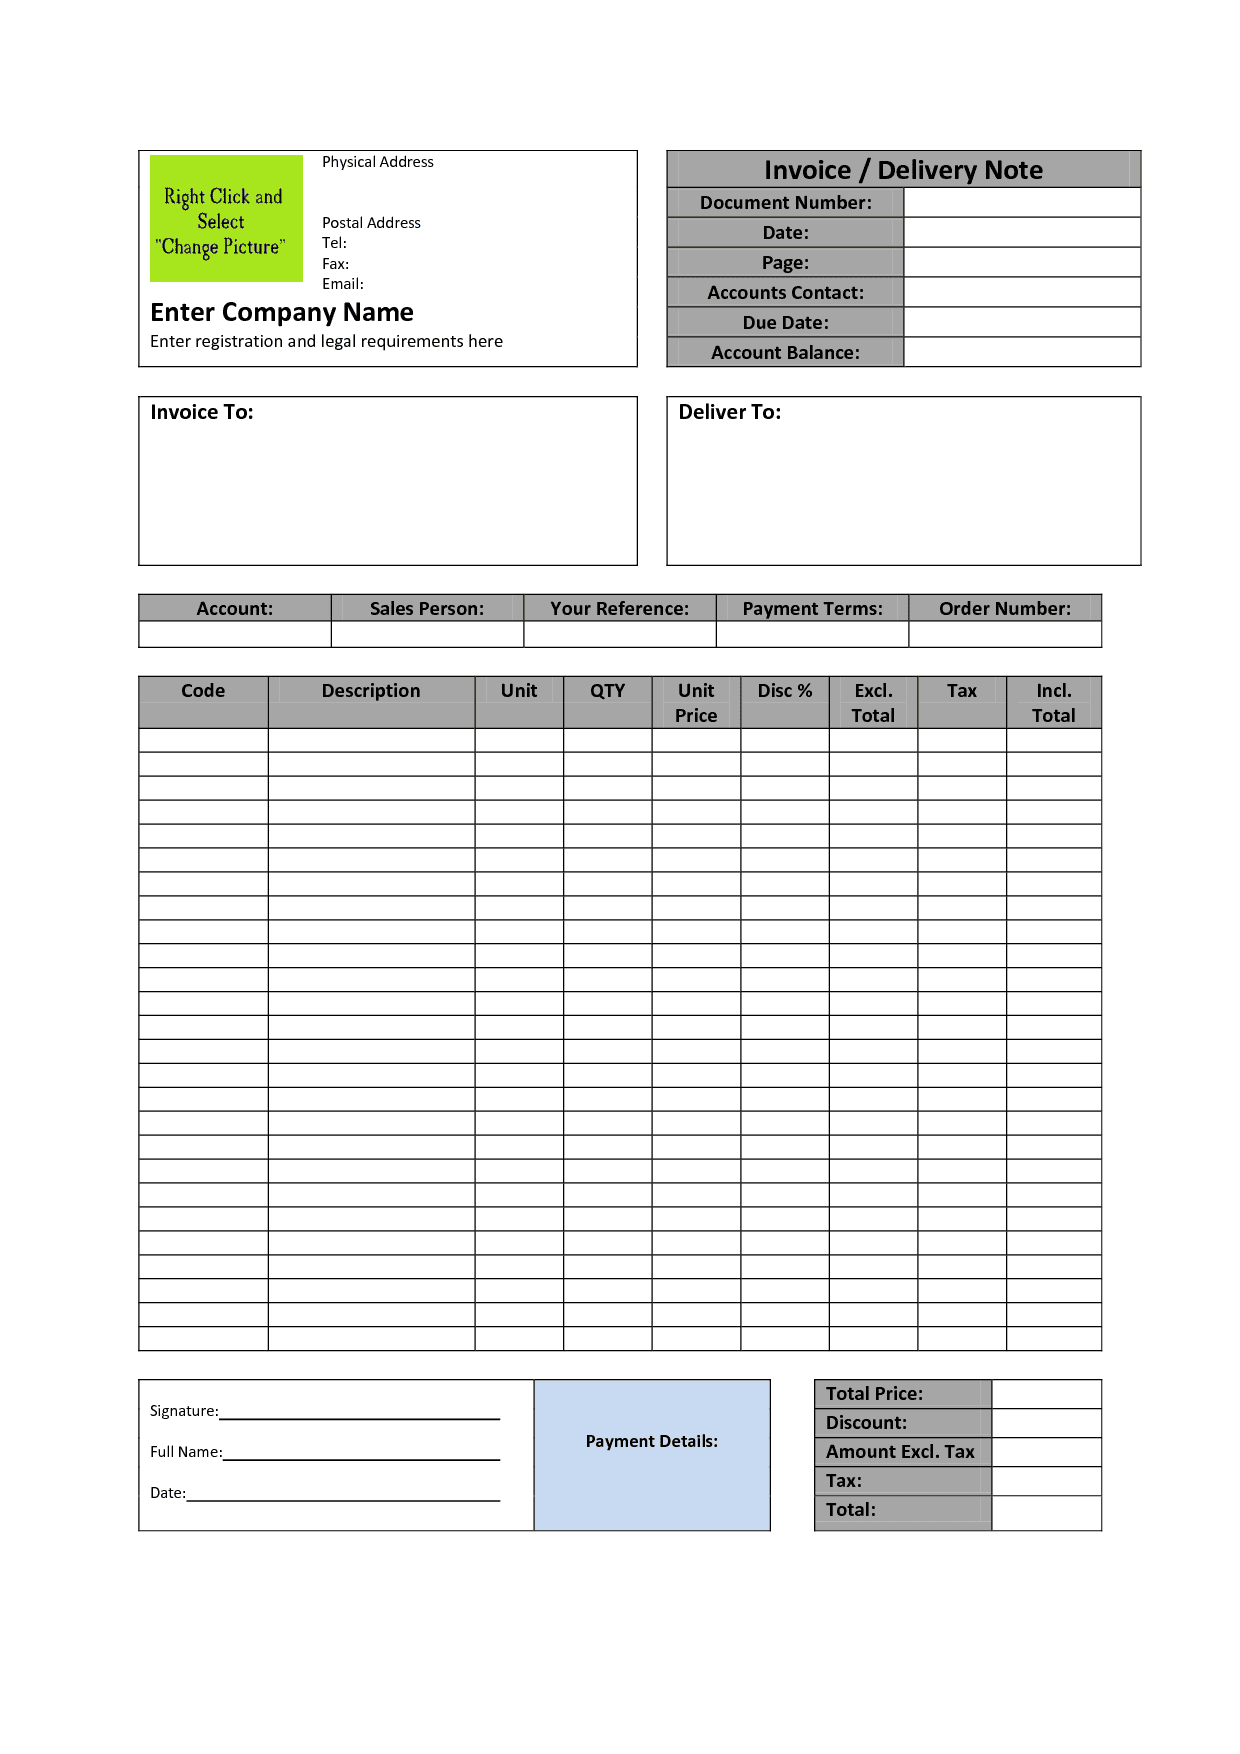 Invoice Templates Printable Free Invoice Template Word Doc Spreadsheet Templates for Busines Spreadsheet Templates for Busines Word Document Invoice Template Free